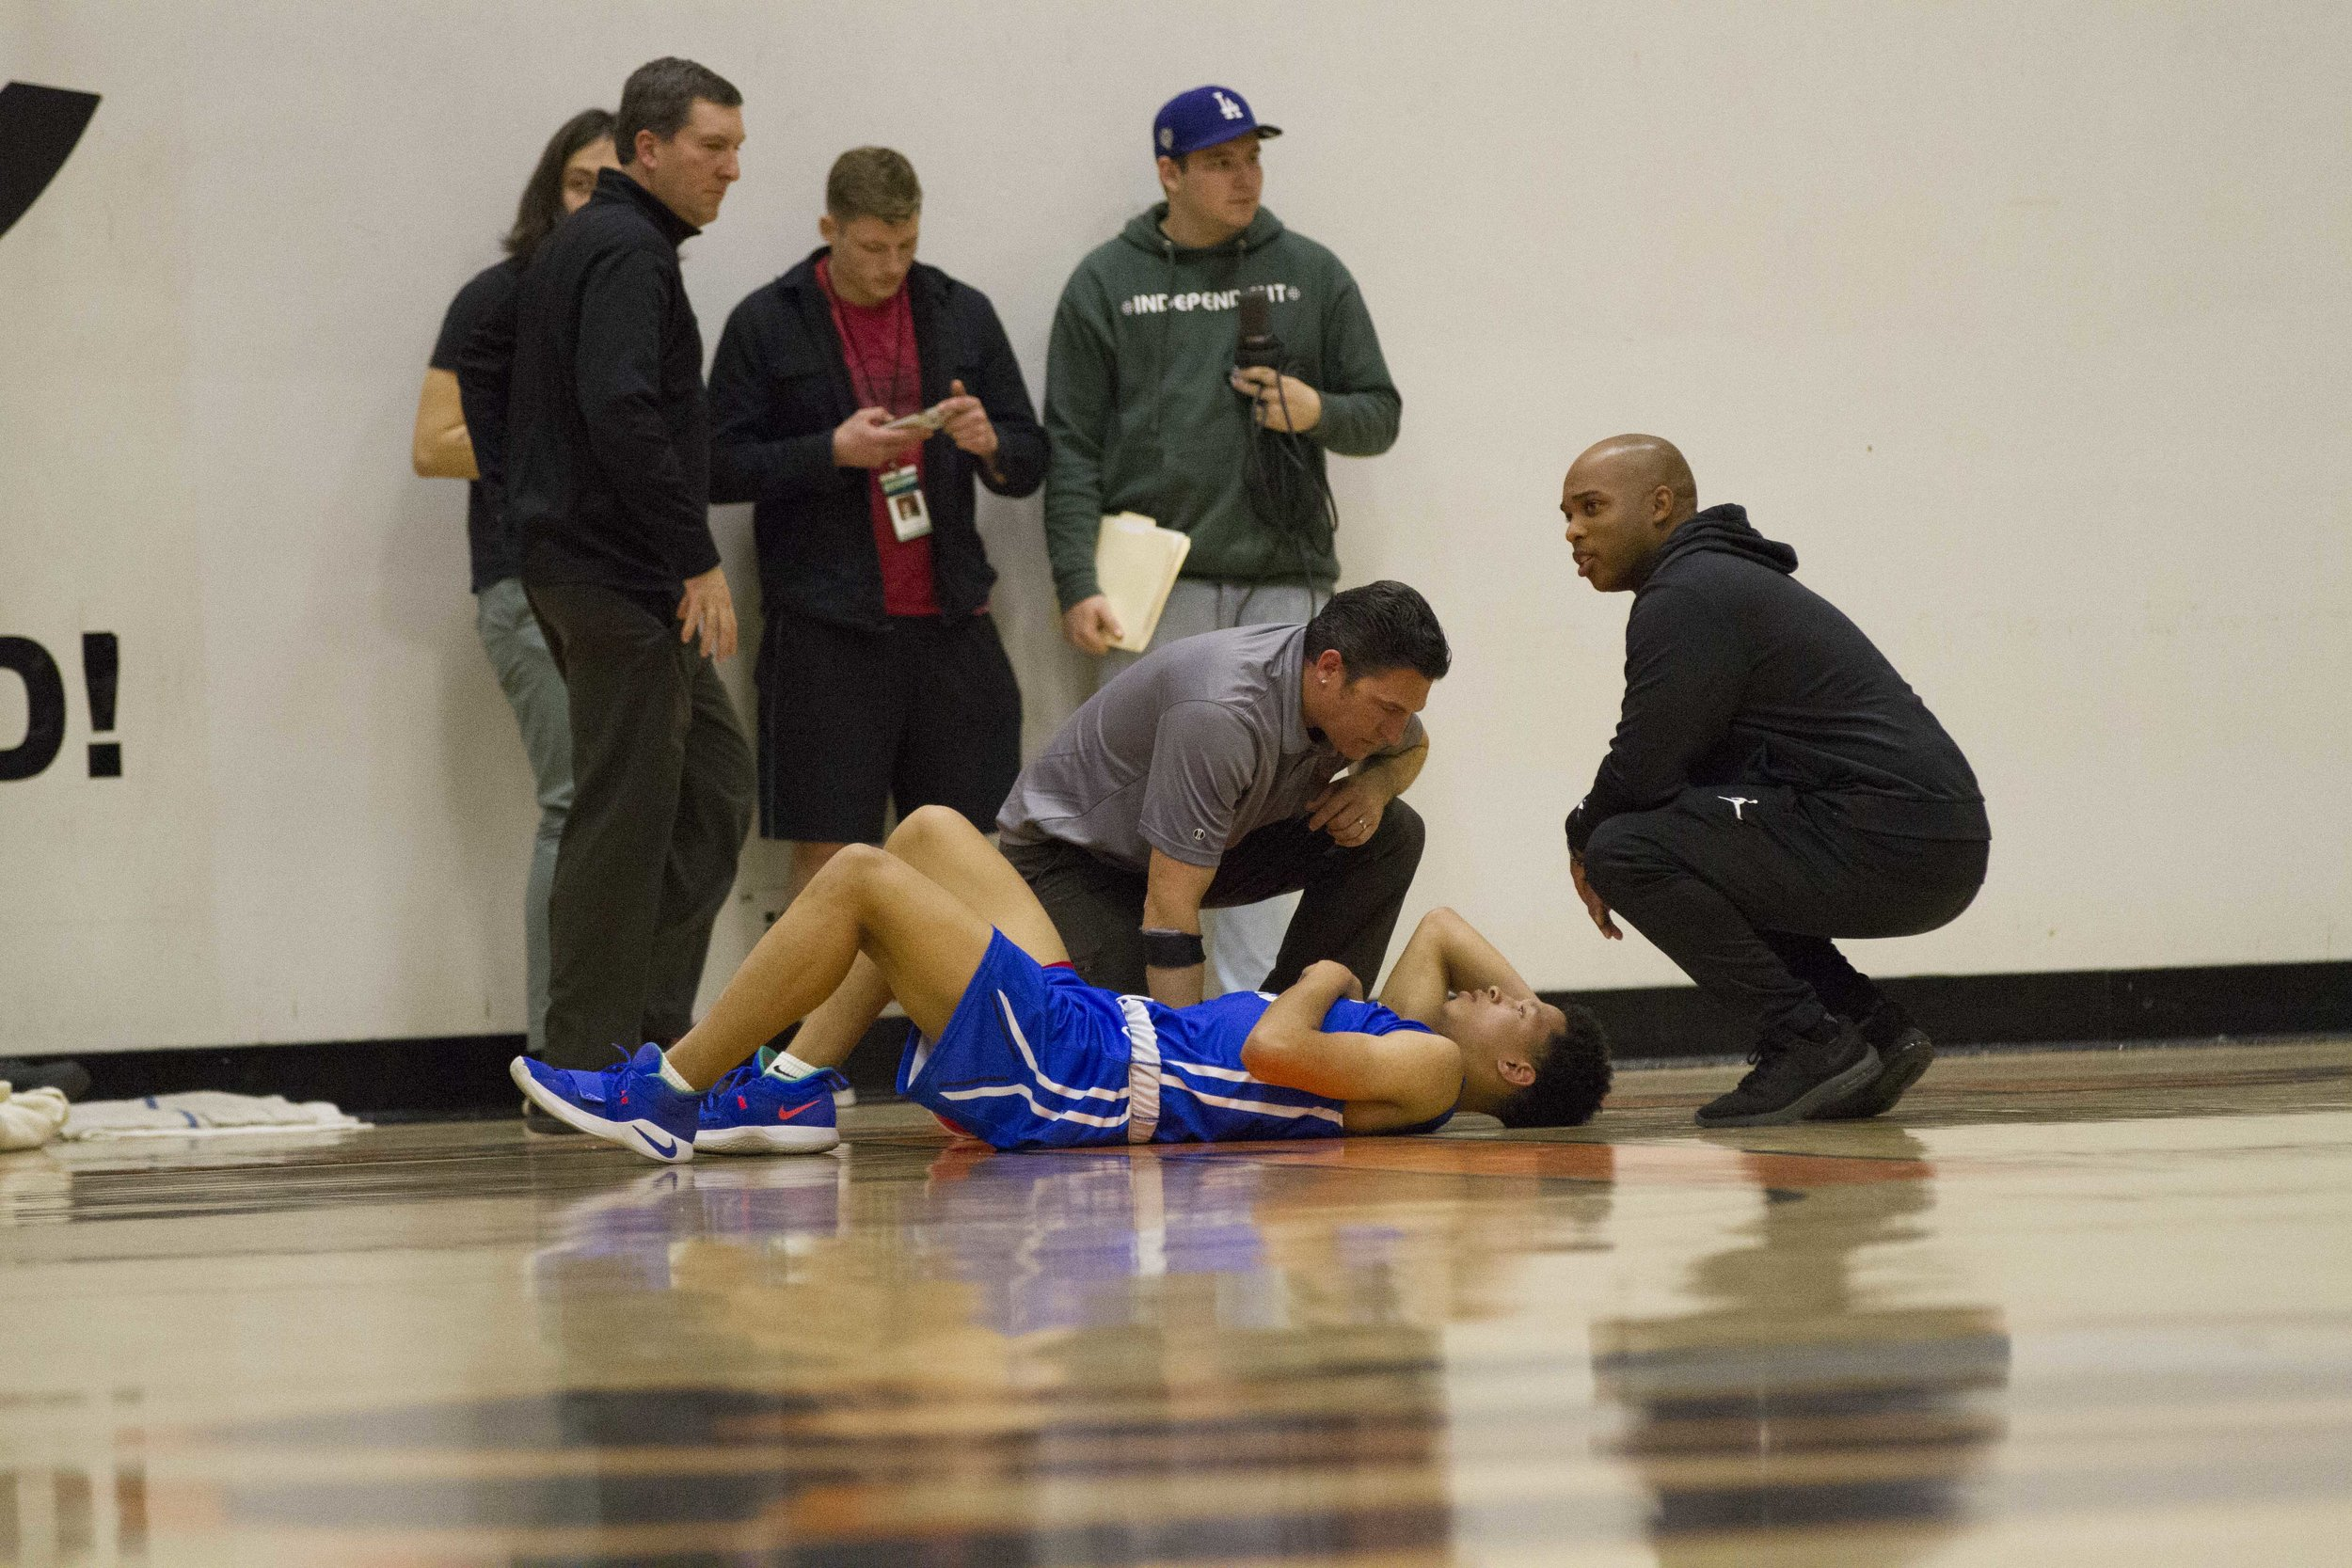 Mekhi Kimble (#2) from the Santa Monica College Corsairs knocked his head on the ground as he fell below the net while playing the San Francisco Rams at the CCCAA Men's Basketball Championship Turnament at Ventura College on Thursday March 14, 2019. Final Score 67-63 for the Rams. Photo by Tanya Barcessat